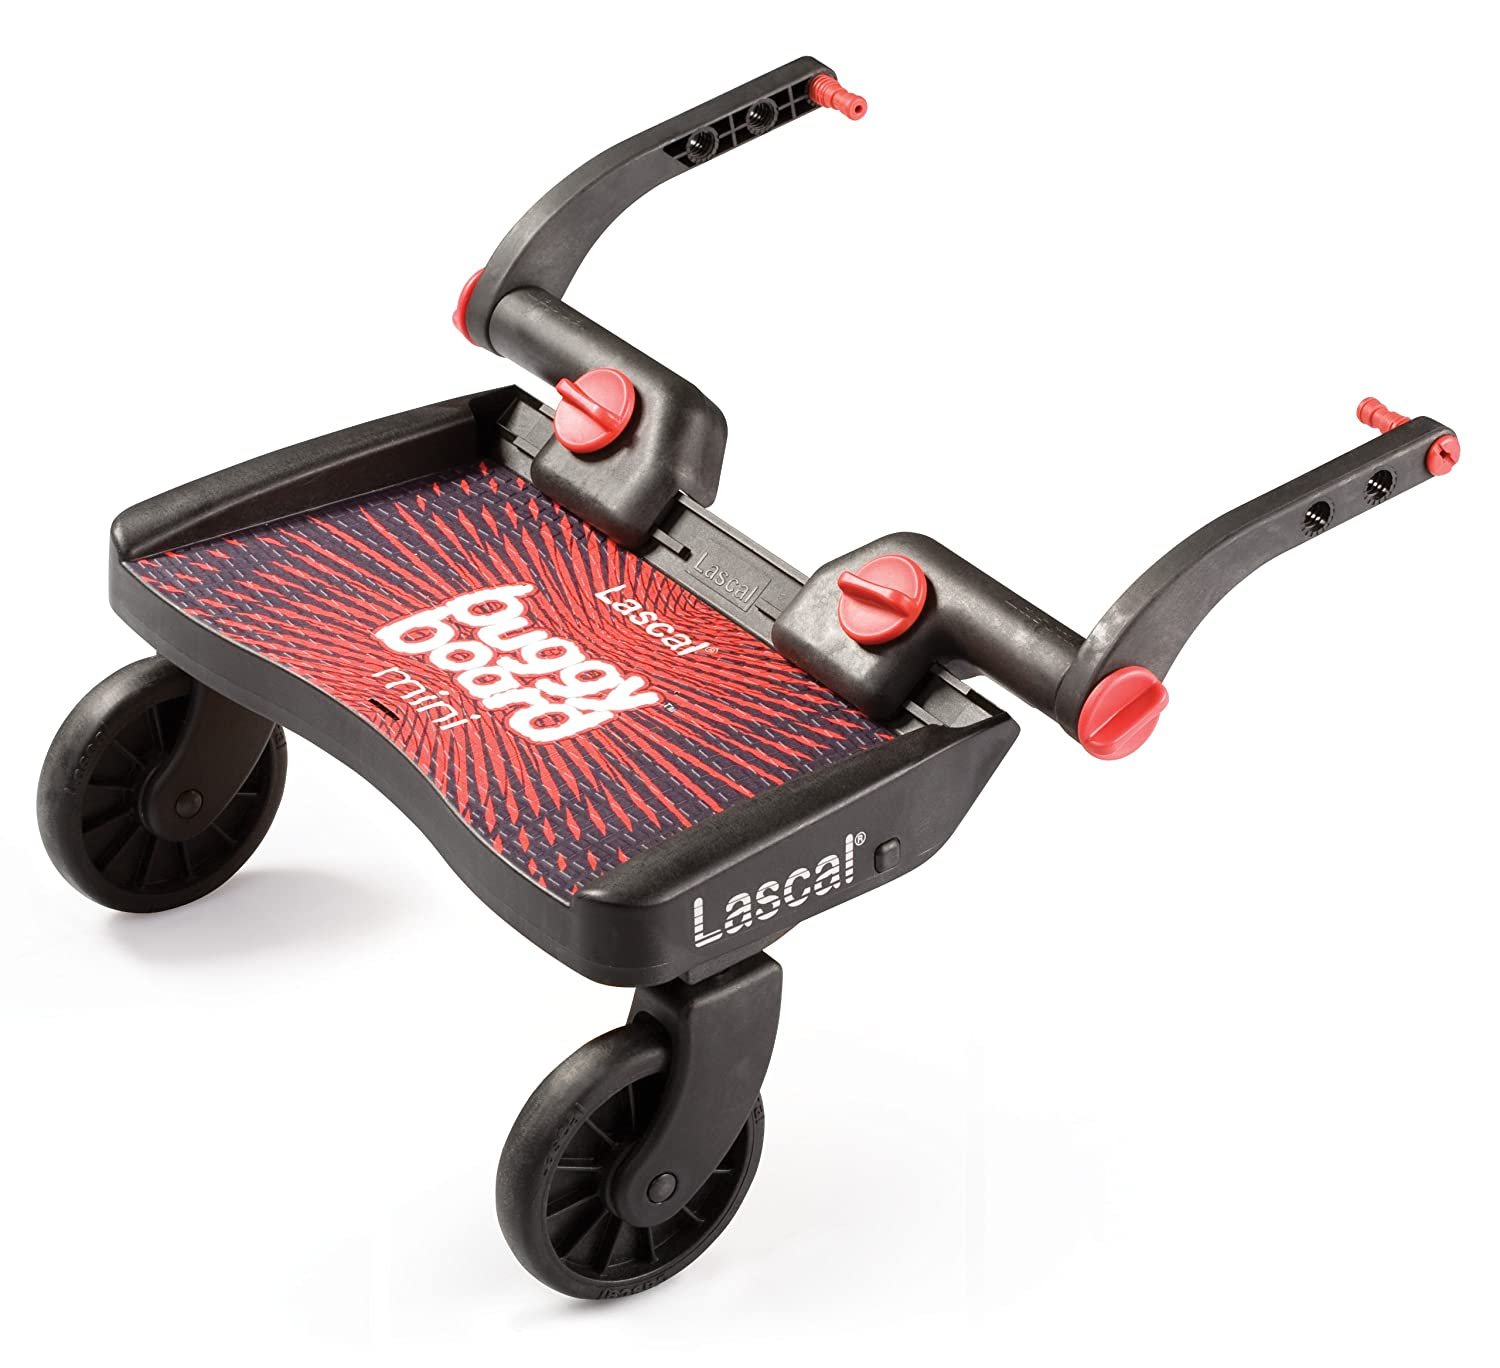 Lascal 2850 - Buggy Board Mini - Tabla con ruedas para carrito, color rojo y negro: Amazon.es: Bebé